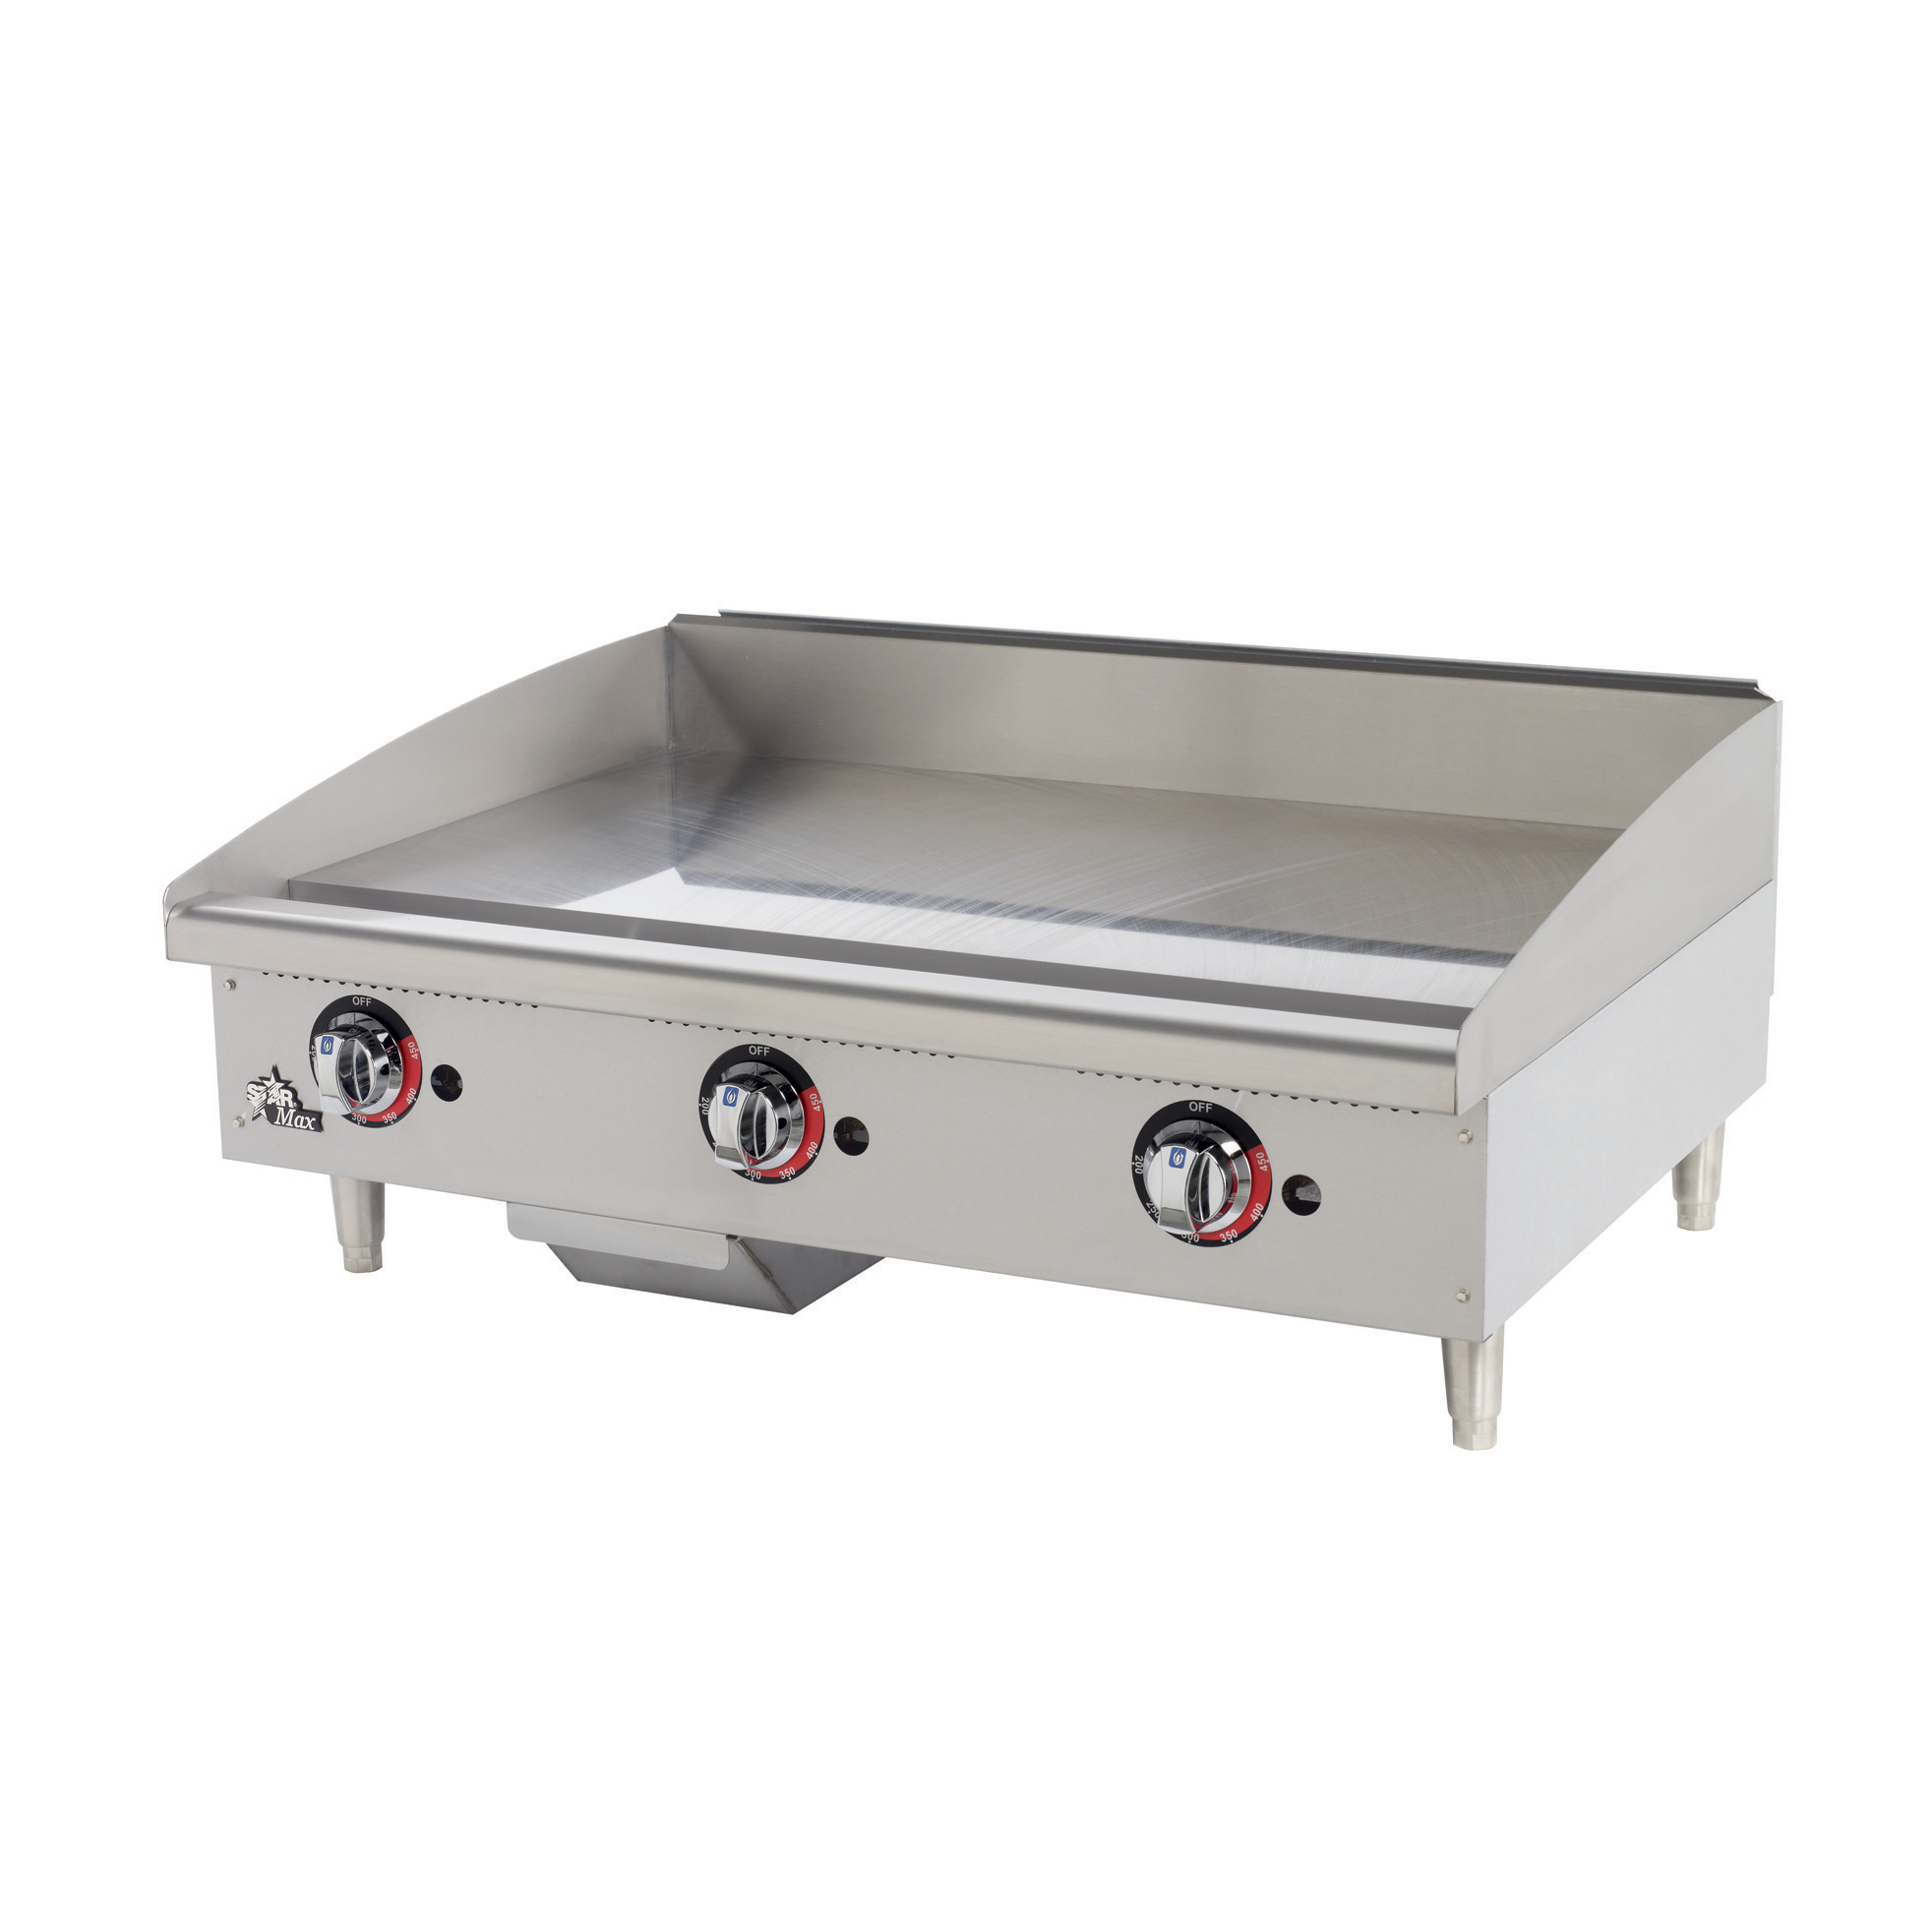 Star 636TF griddle, gas, countertop